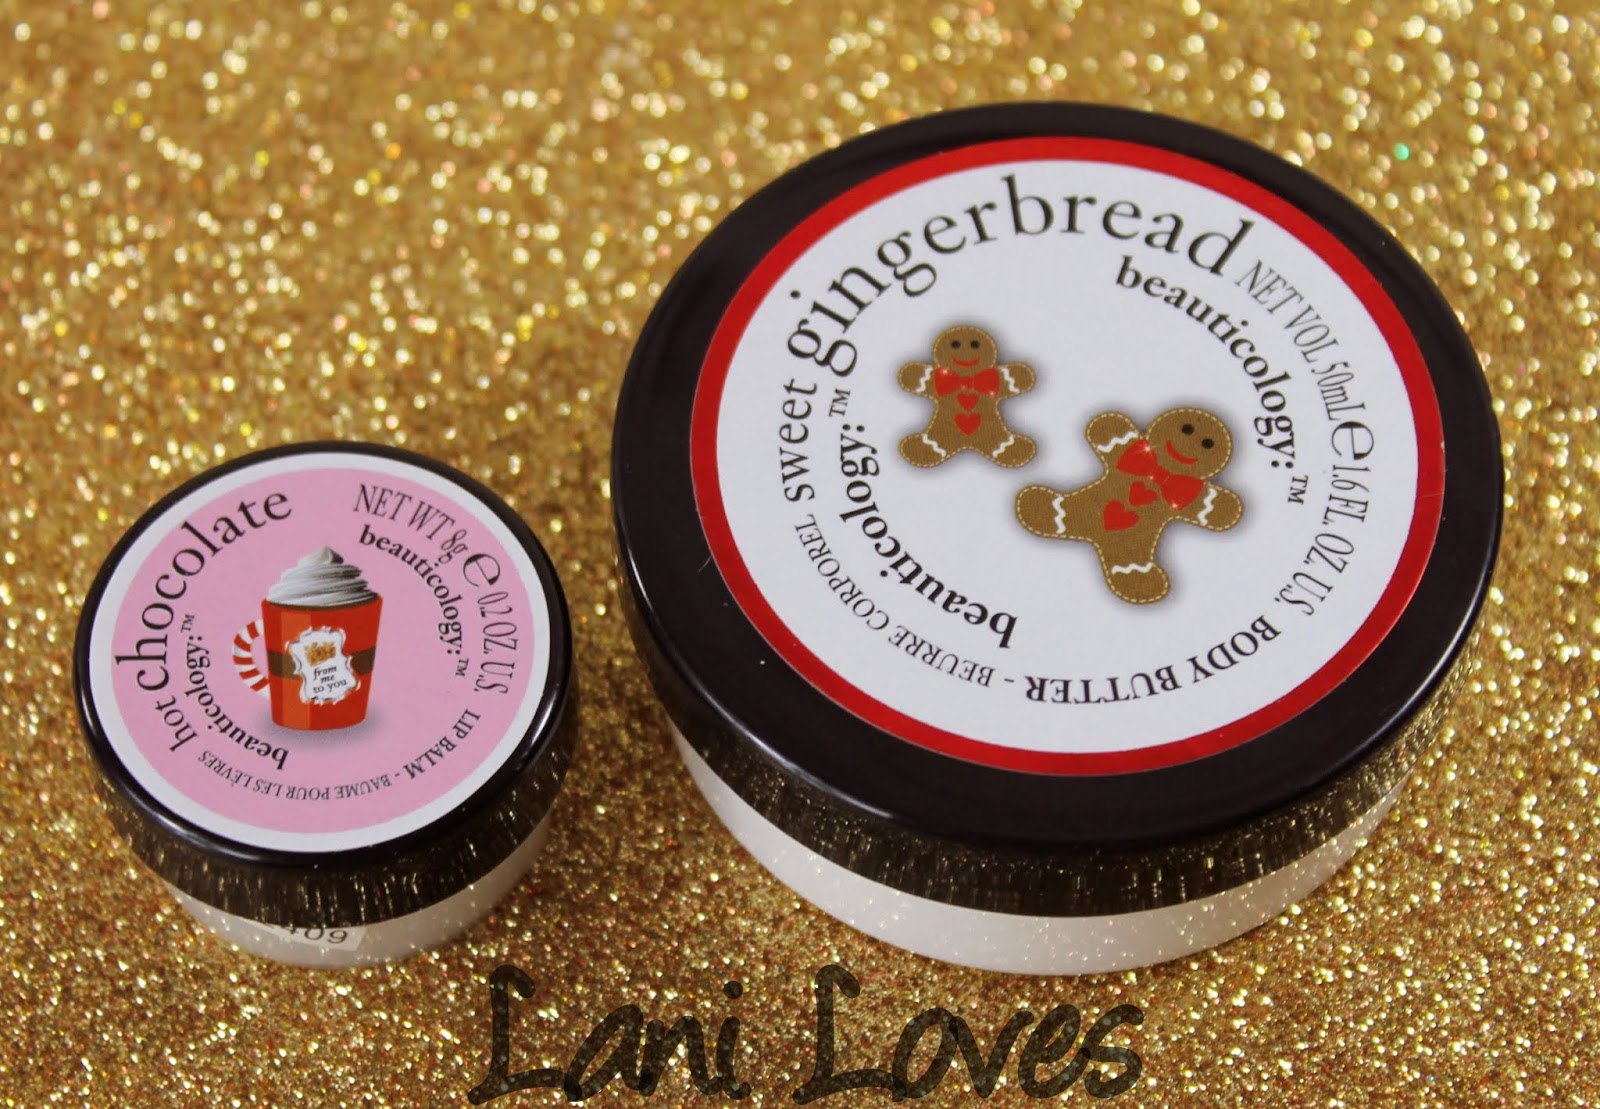 Beauticology Gingerbread Man Set - Hot Chocolate Lip Balm and Sweet Gingerbread Body Butter Photos & Review